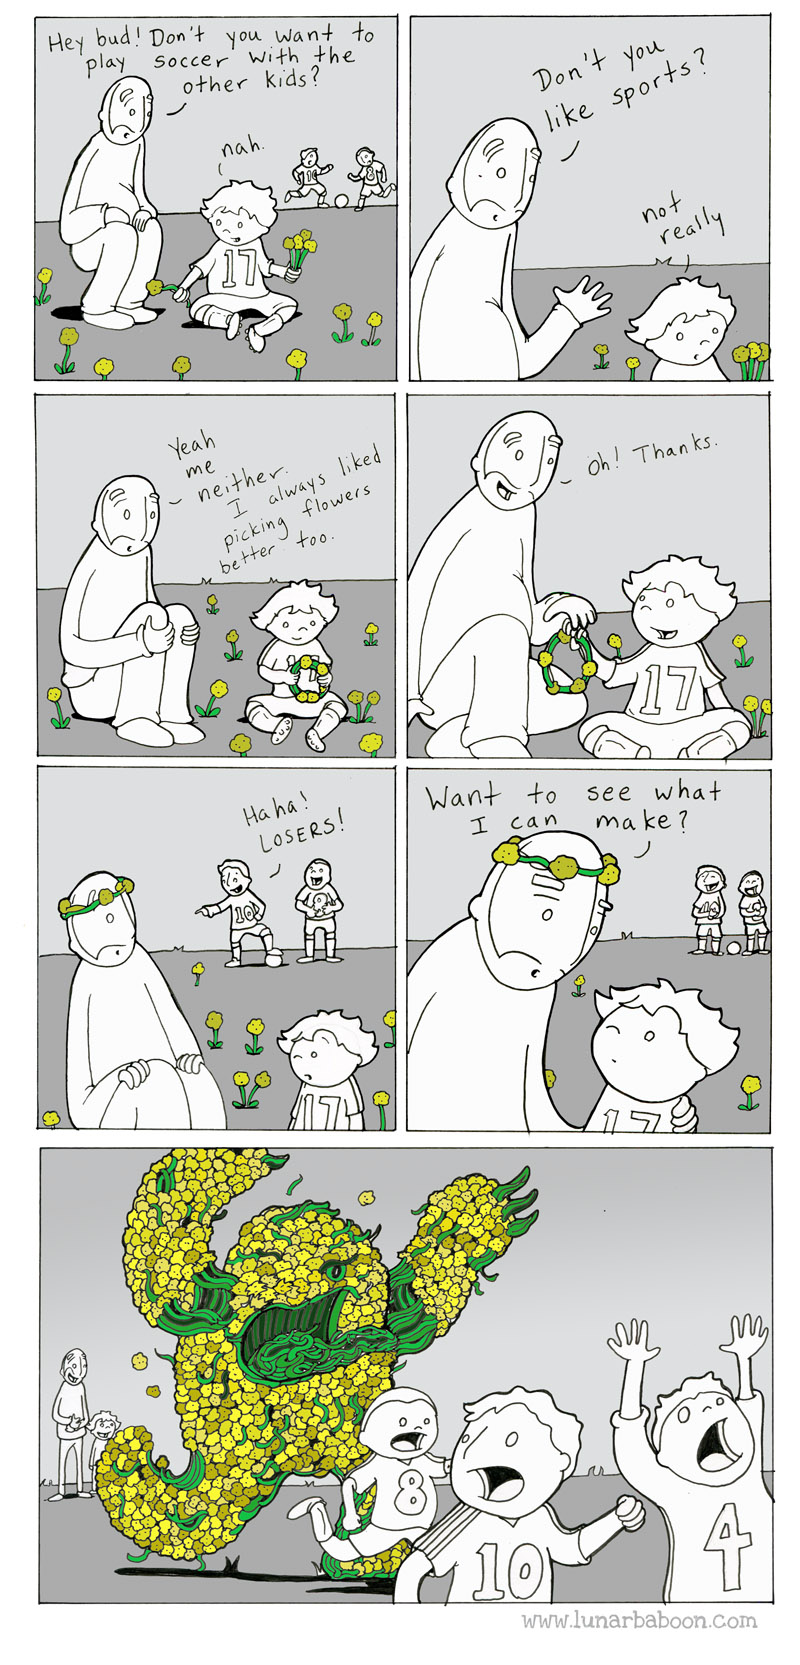 Source: lunarbaboon.com